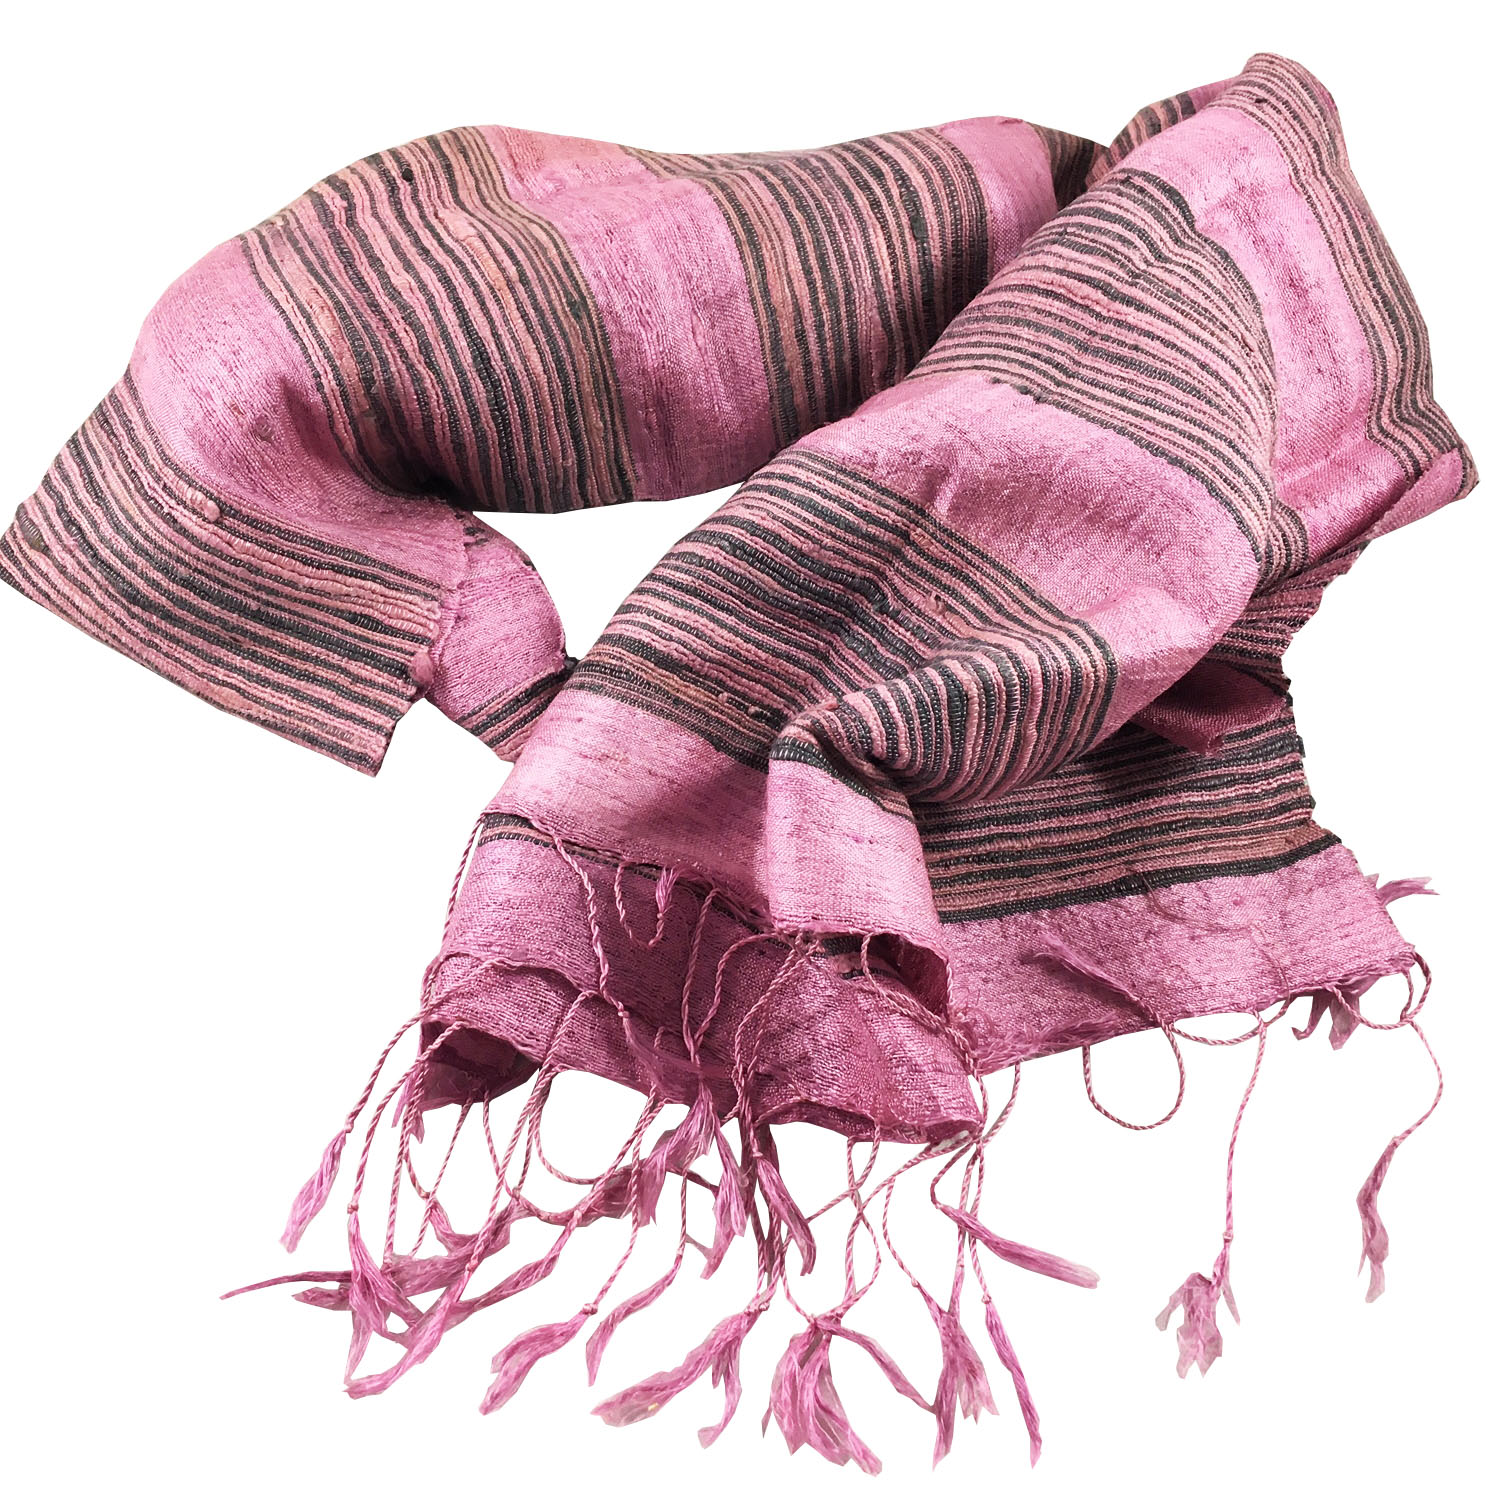 Thai Silk Scarf With Stripe Pattern Hand-Woven In Chiang Mai ...